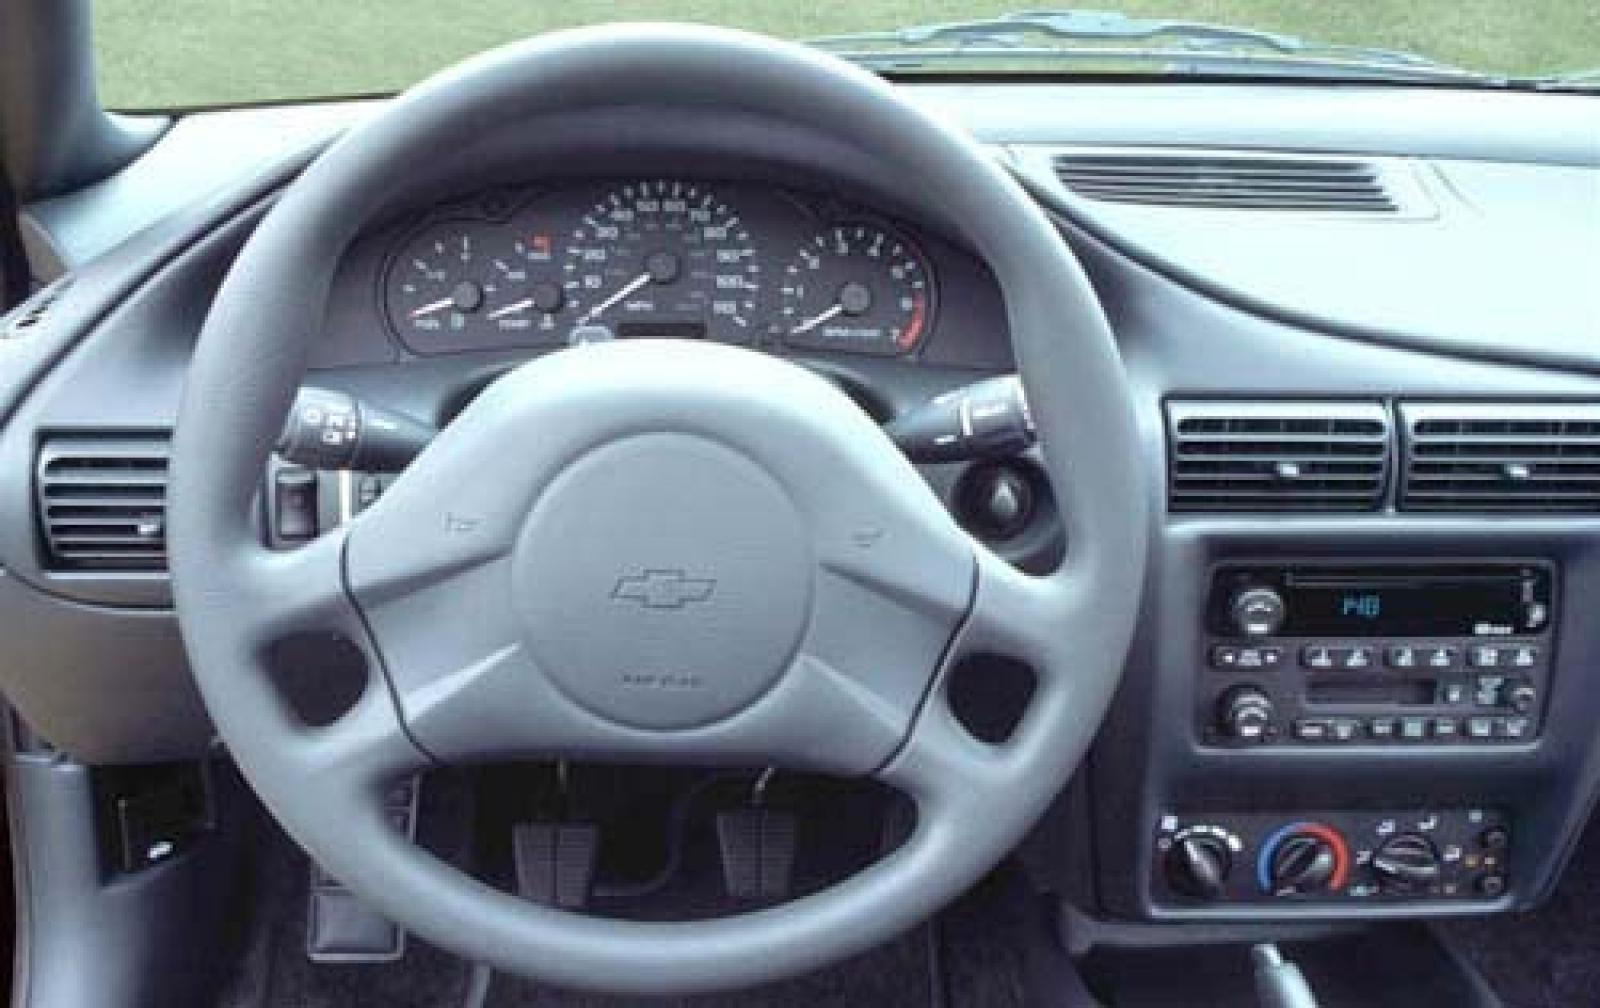 2005 chevrolet cavalier information and photos zombiedrive for 2003 chevy cavalier interior parts